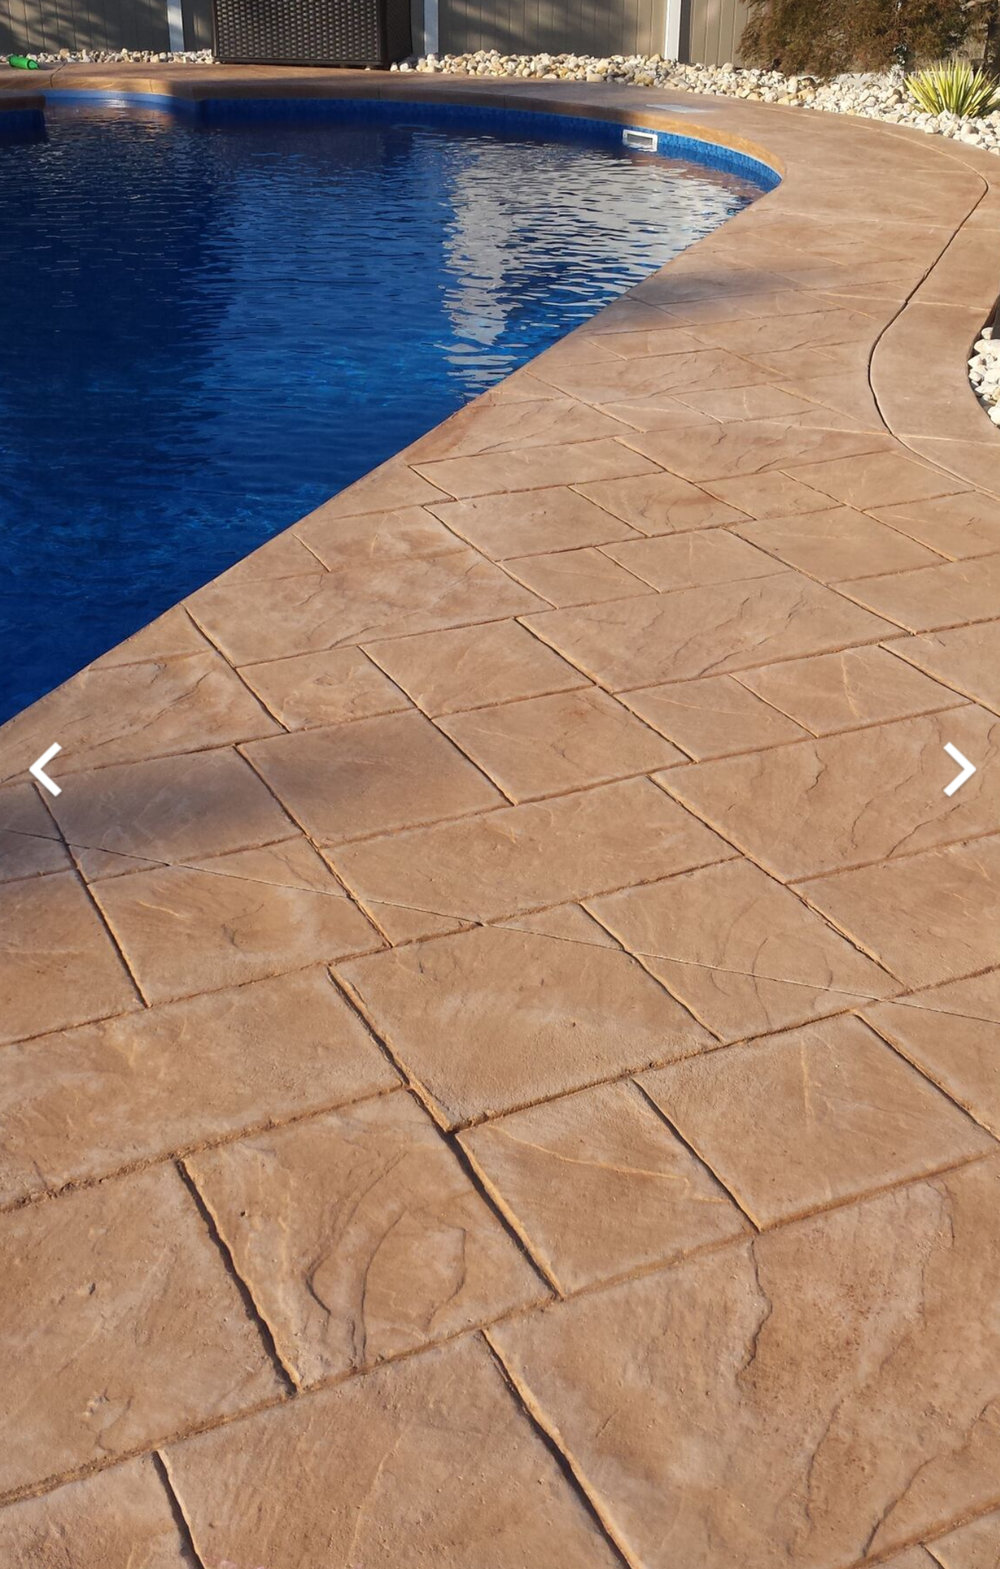 Large ashler slate fm 3150 Desert tan integral color Sunbaked clay highlights